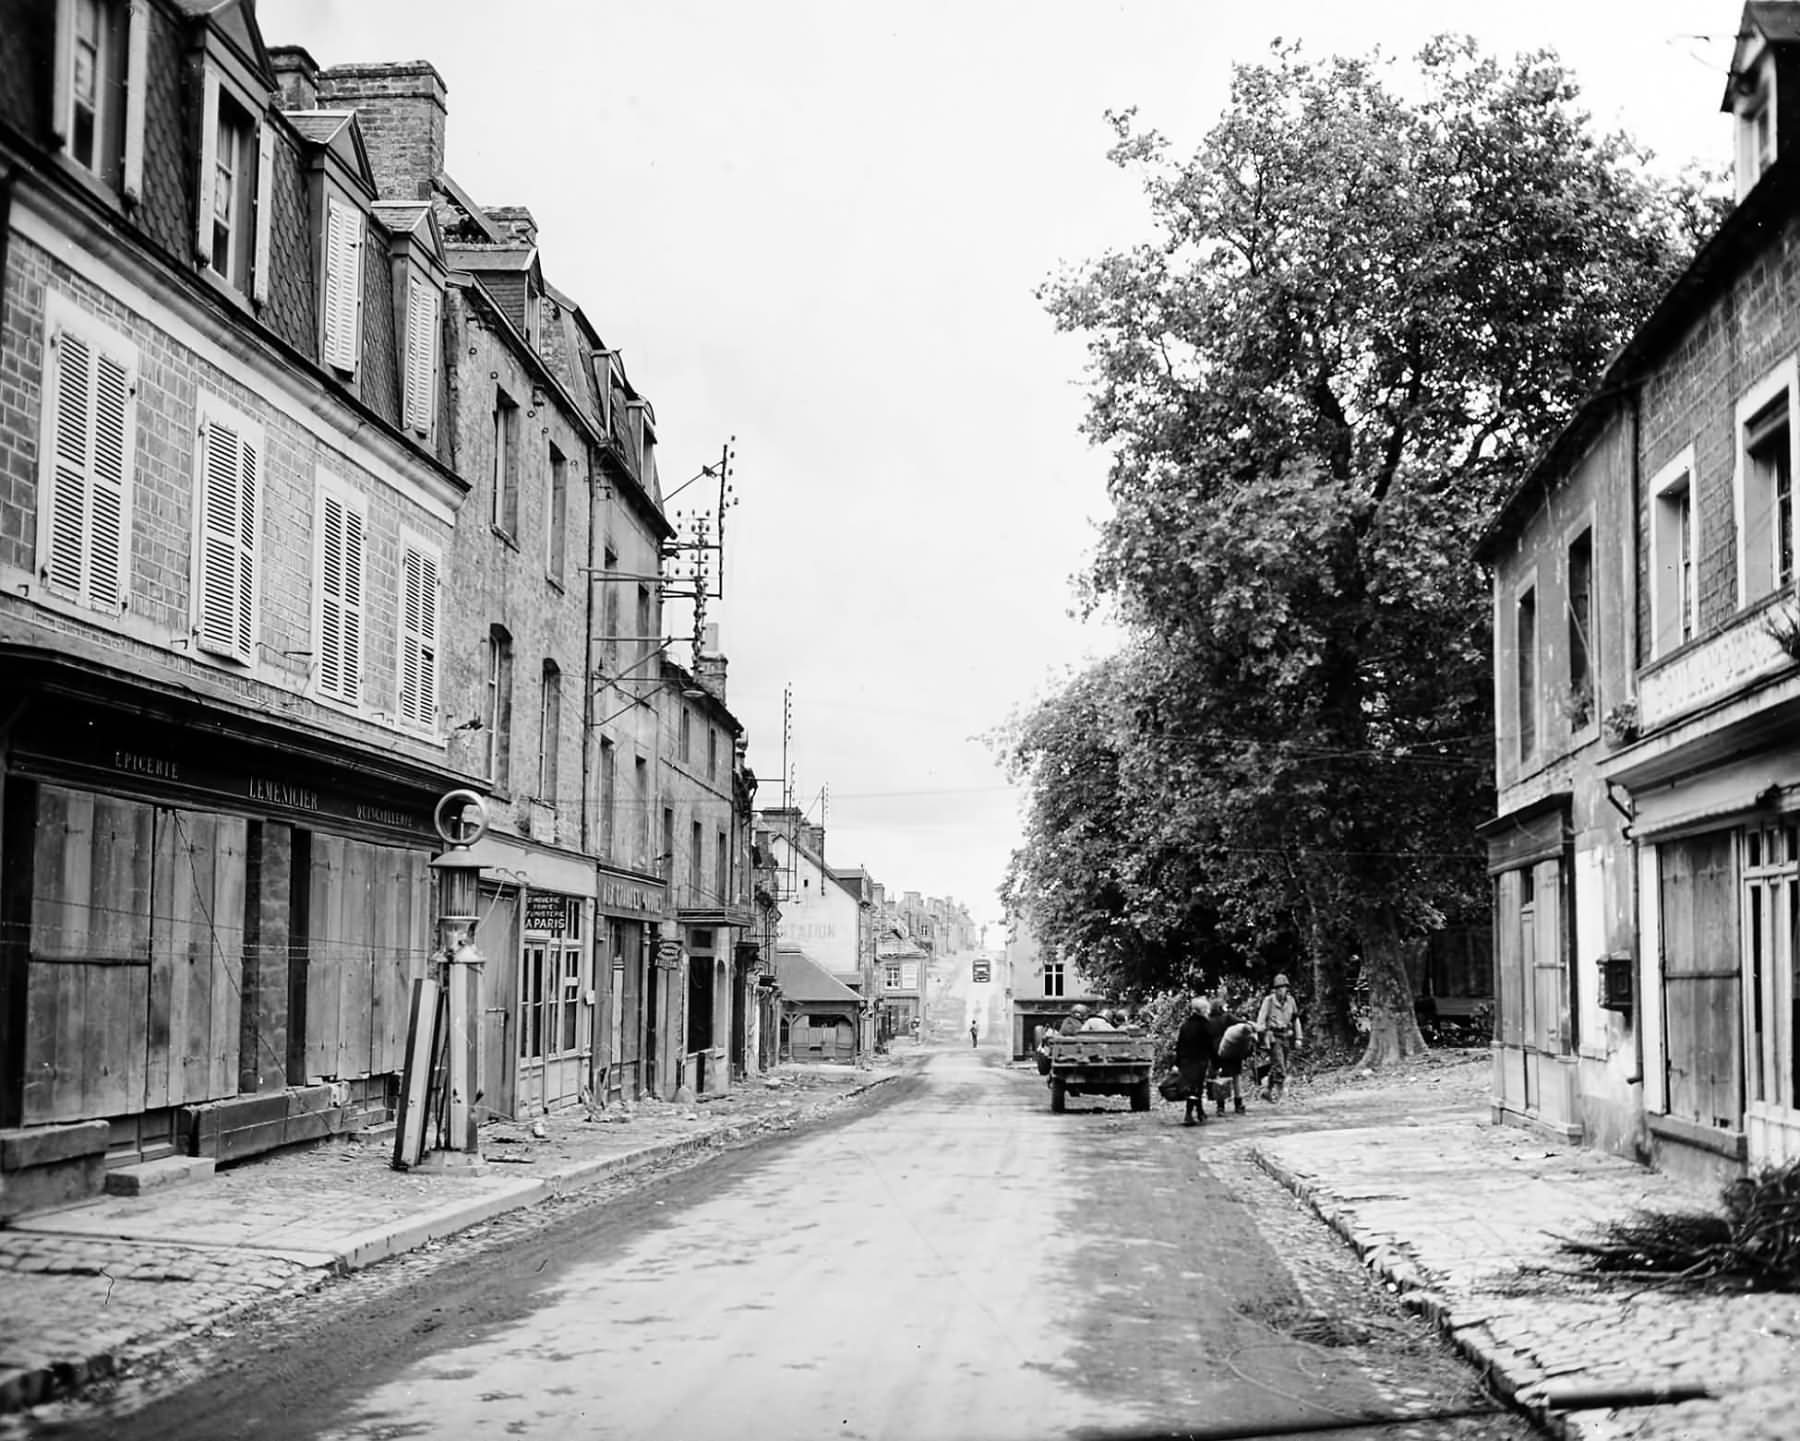 Street scene in Sainte-Mère-Église inland from Utah Beach on 10 June 1944